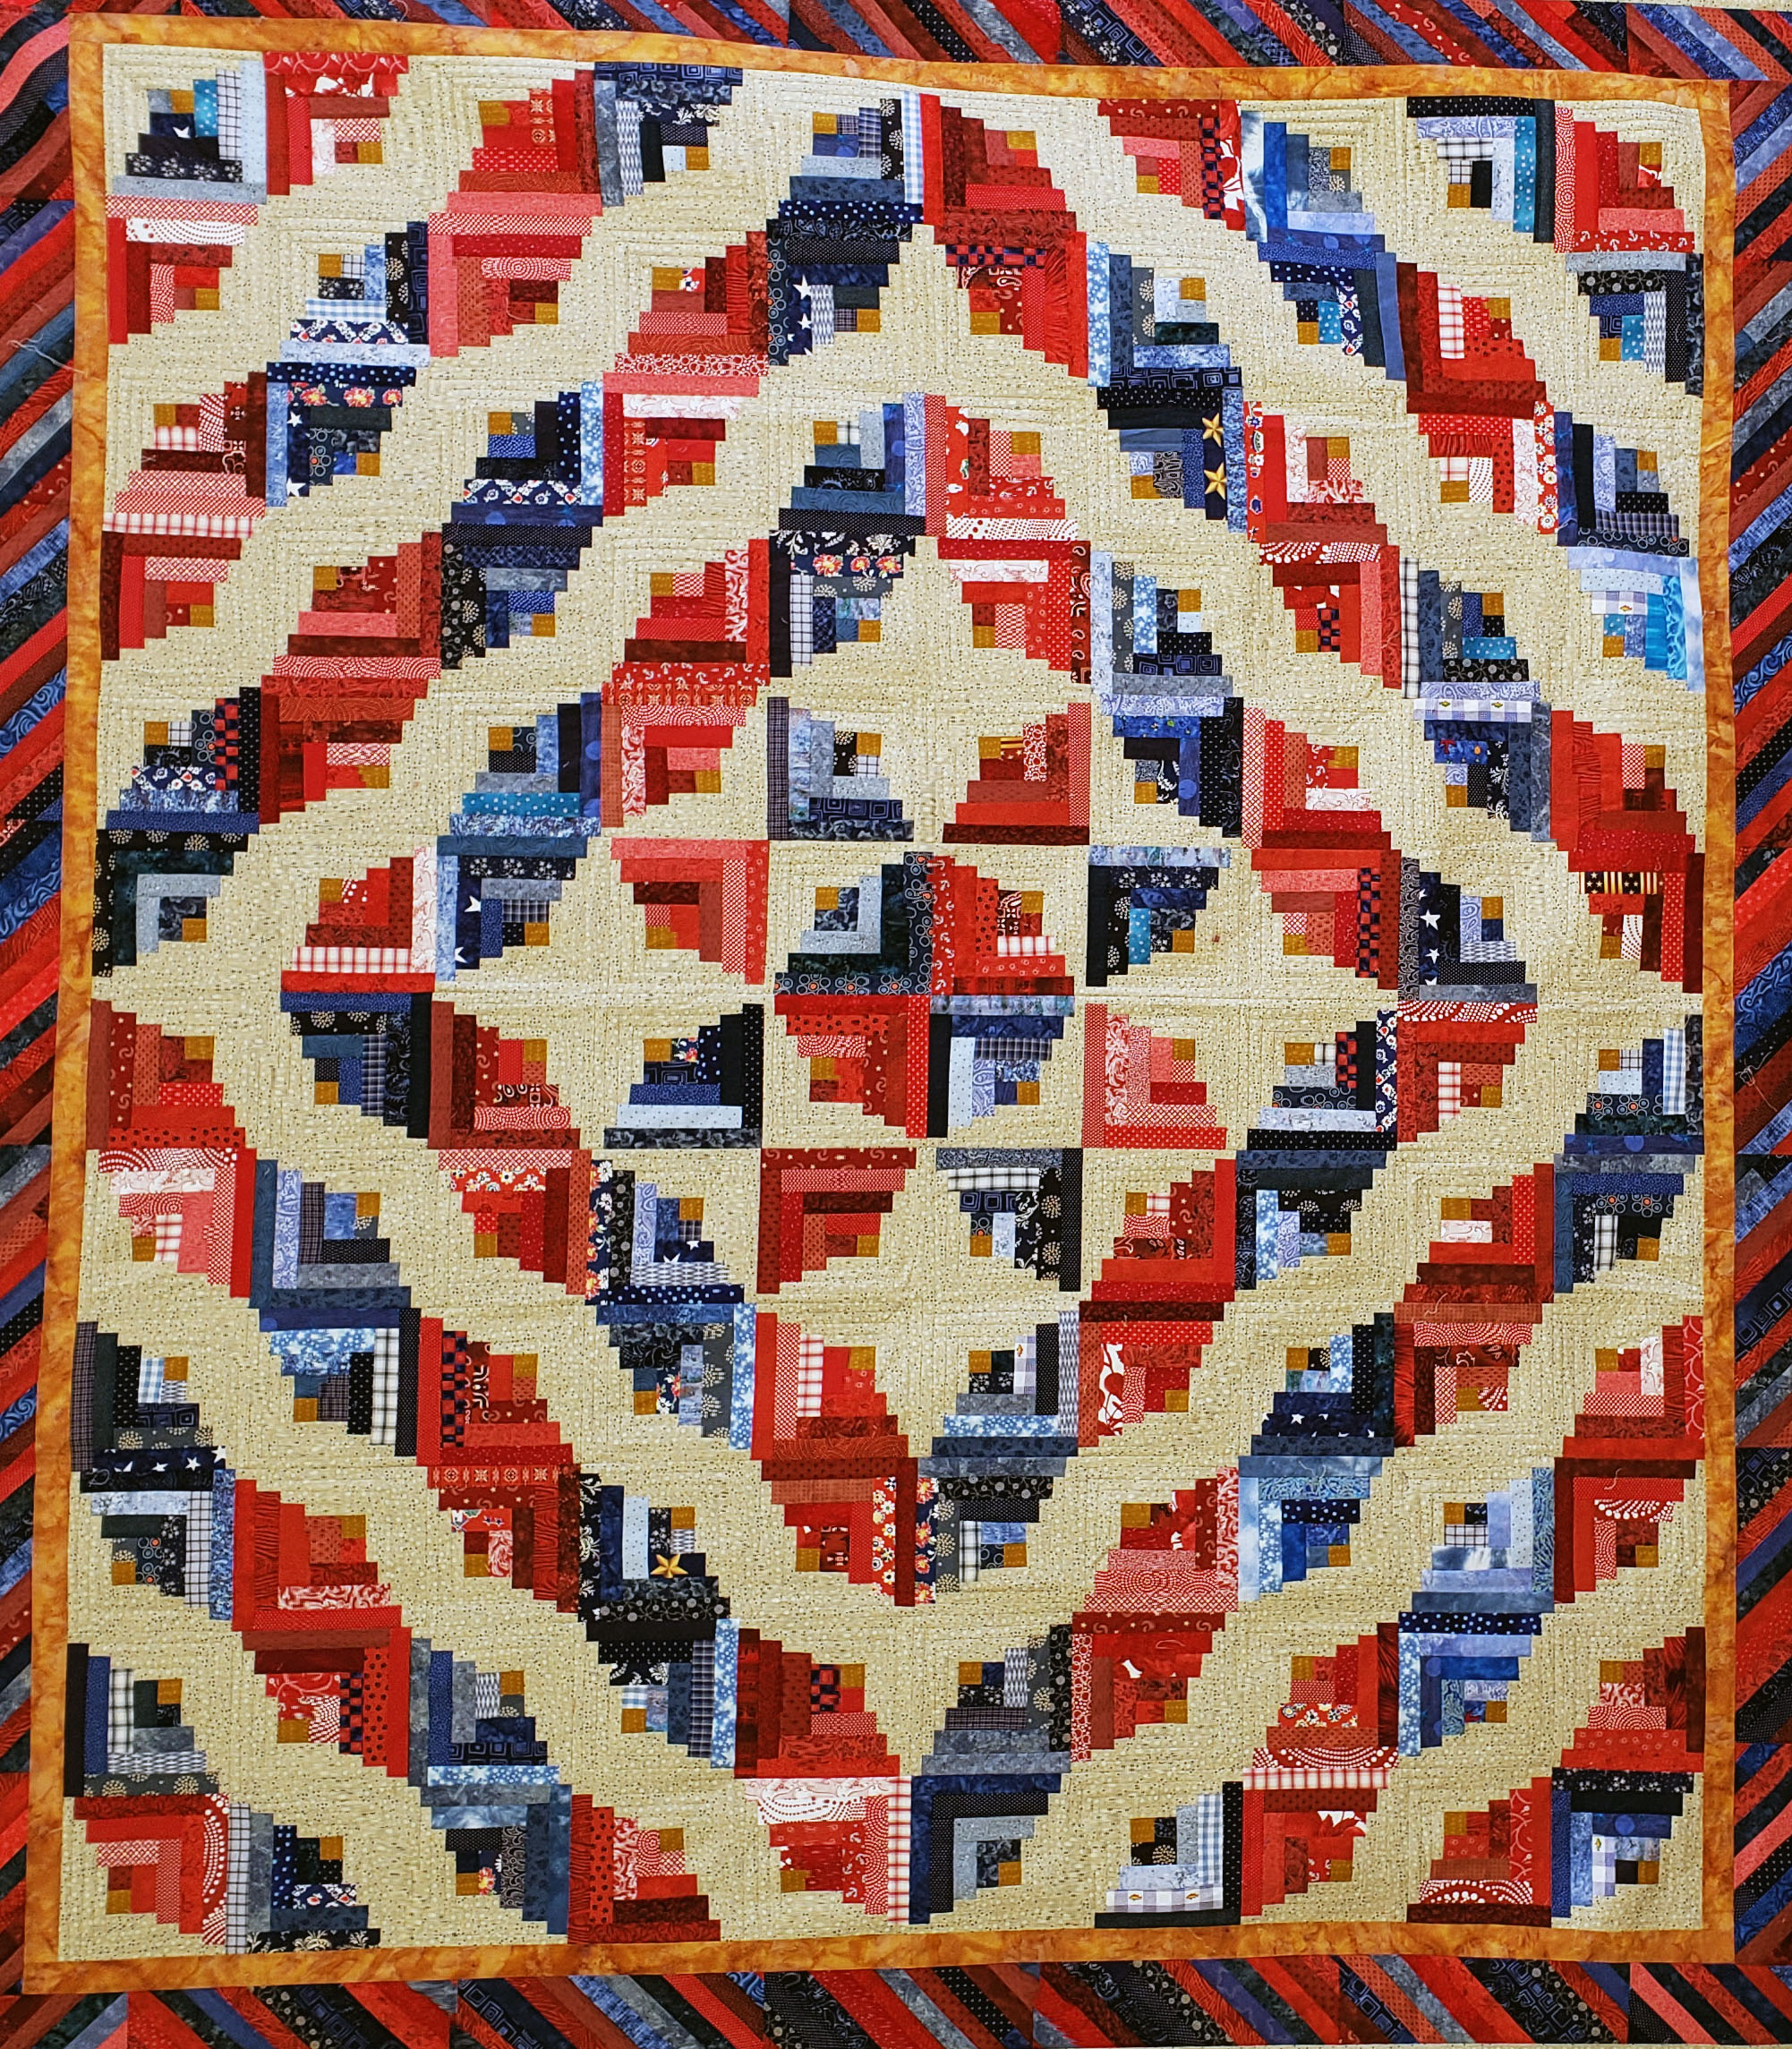 2019 raffle quilt at the 2019 Outer Banks Community Quilt Show at Roanoke Island Festival Park